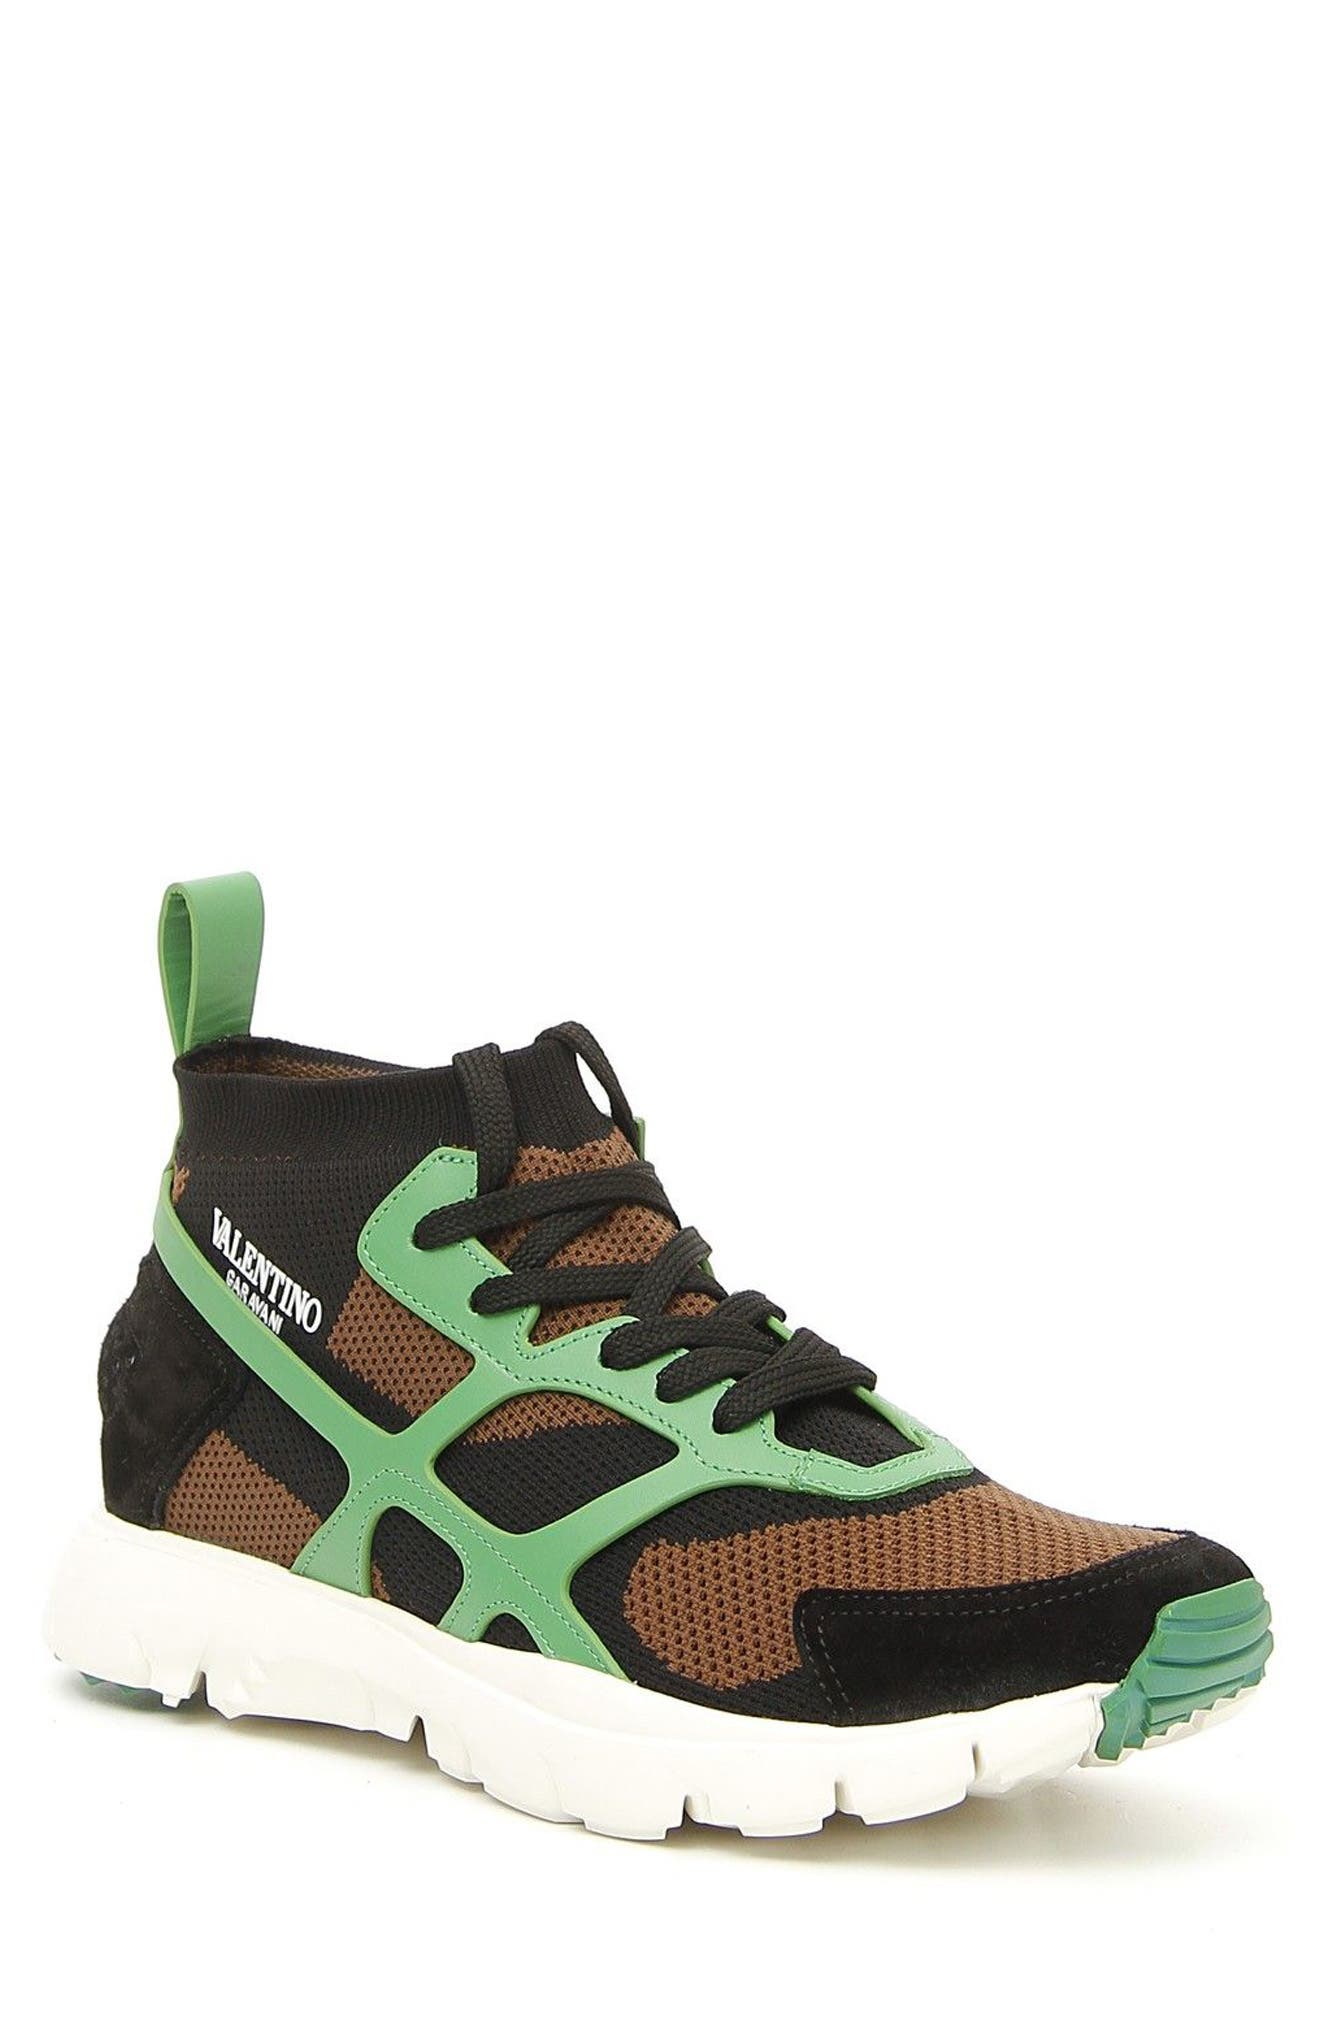 Sound High Sneaker,                         Main,                         color, Army Green/ Nero/ Green